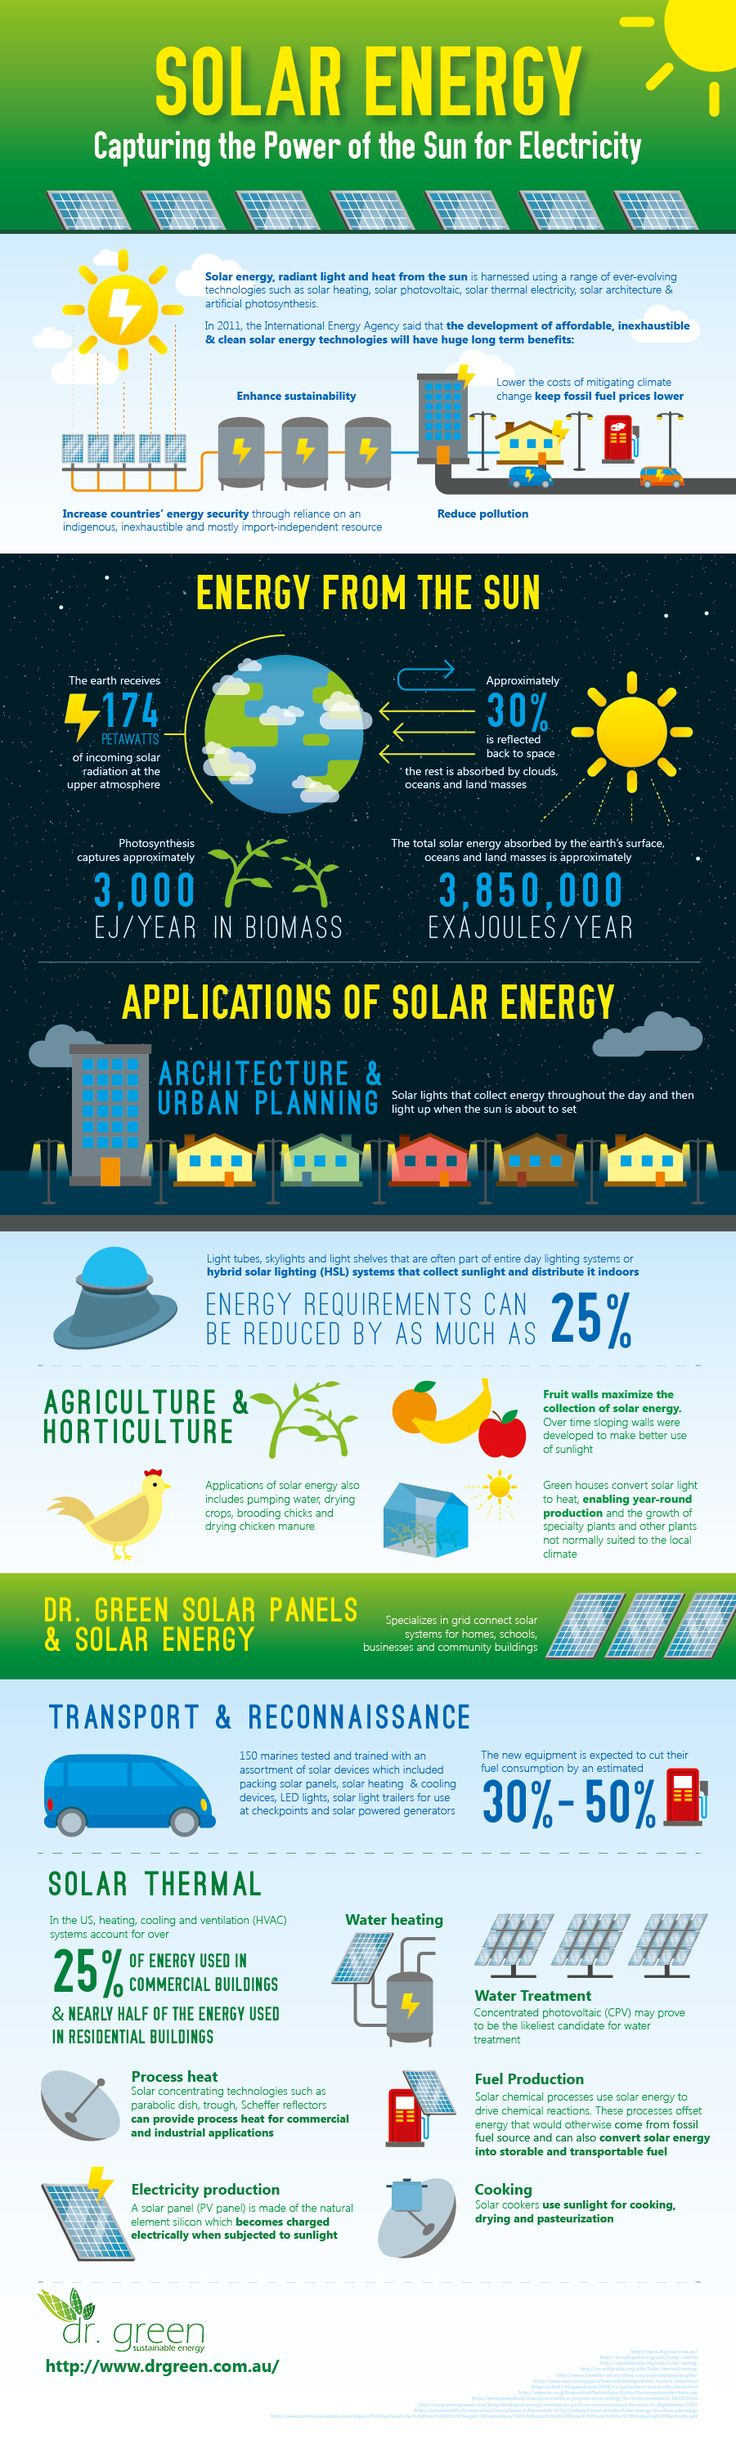 Solar Energy: Capturing The Power Of The Sun For Electricity [INFOGRAPHIC] #solar #energy